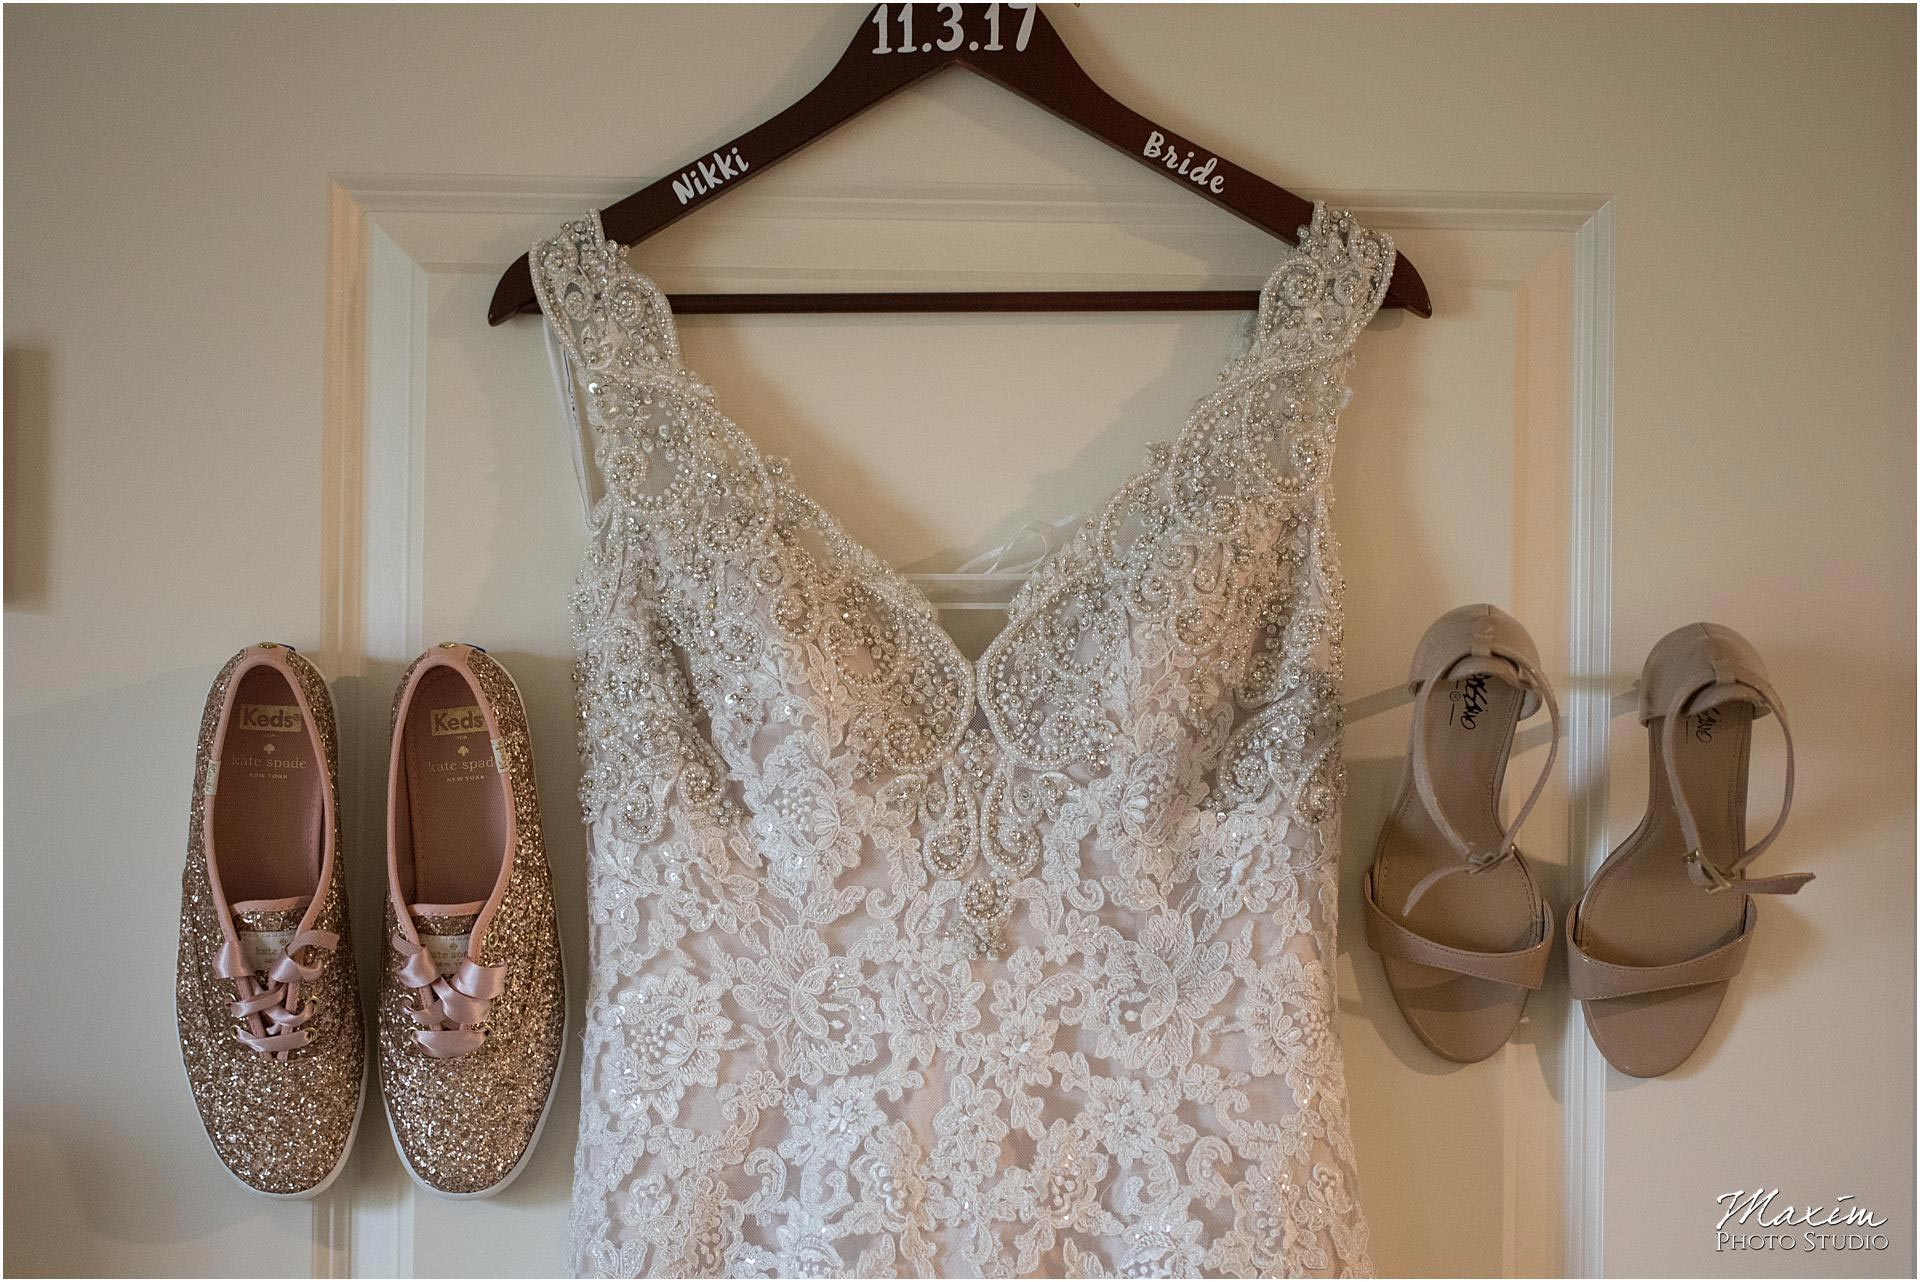 Hilton Garden Inn Austin Landing bride dress